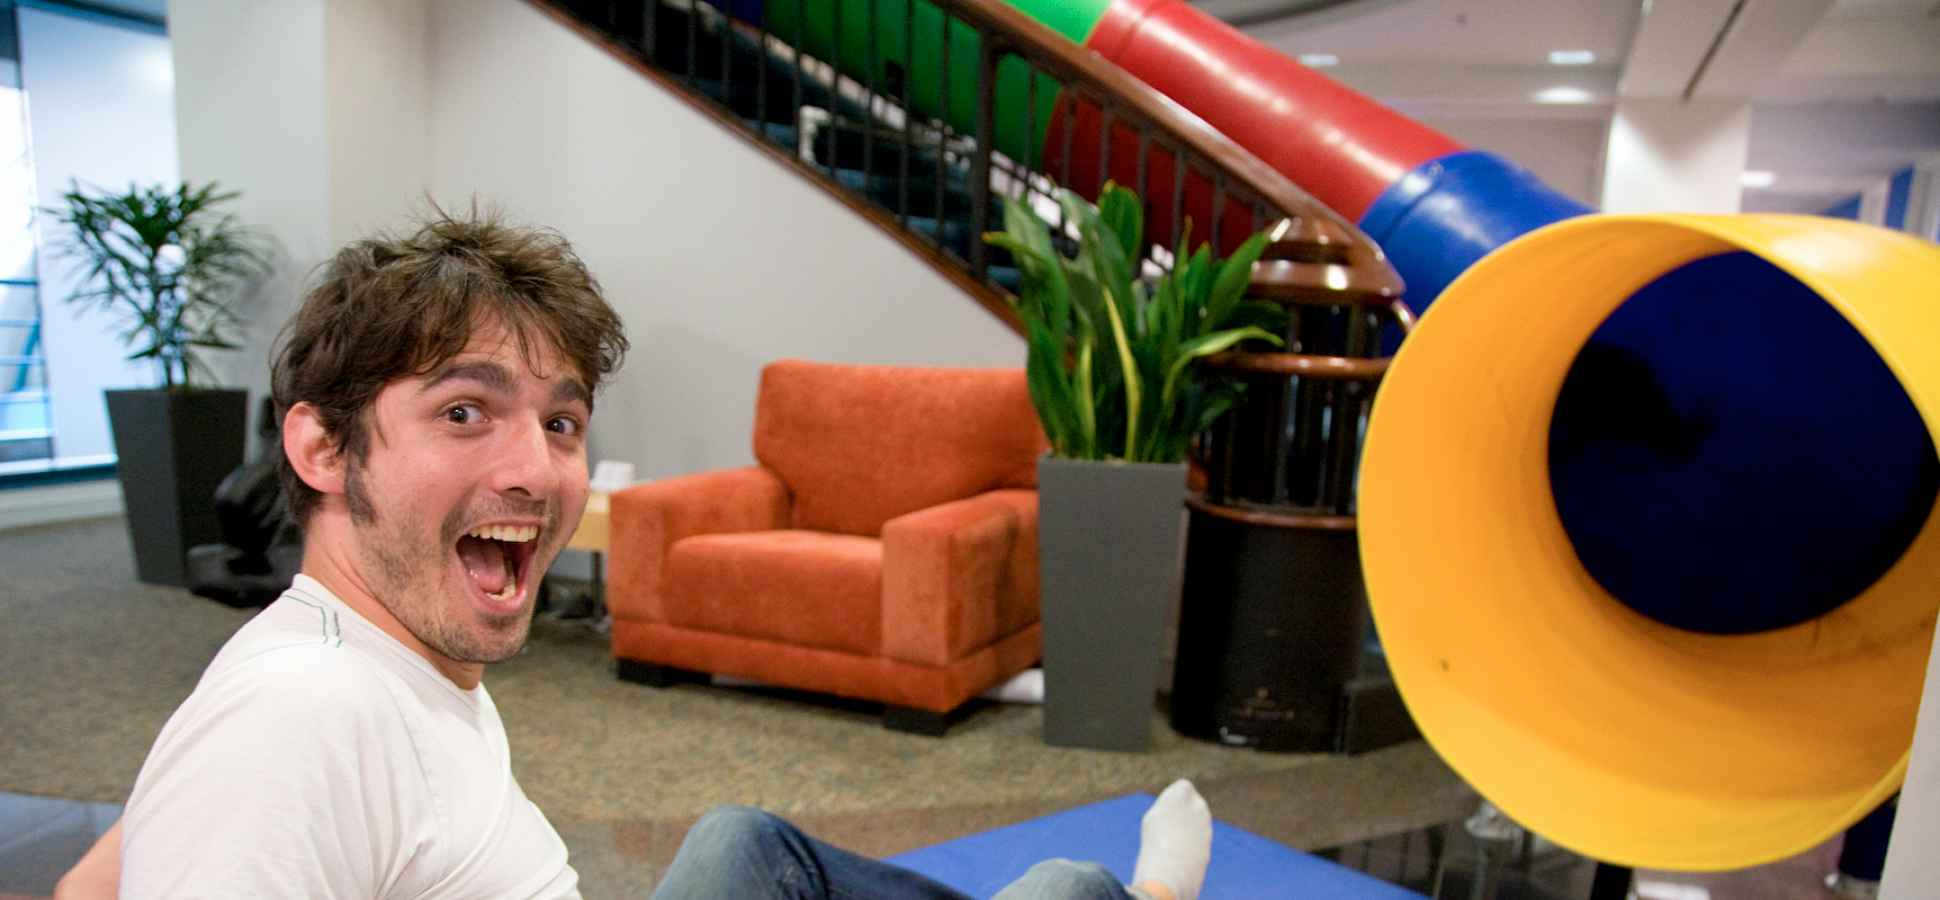 5 Surprising Facts About How Google Hires